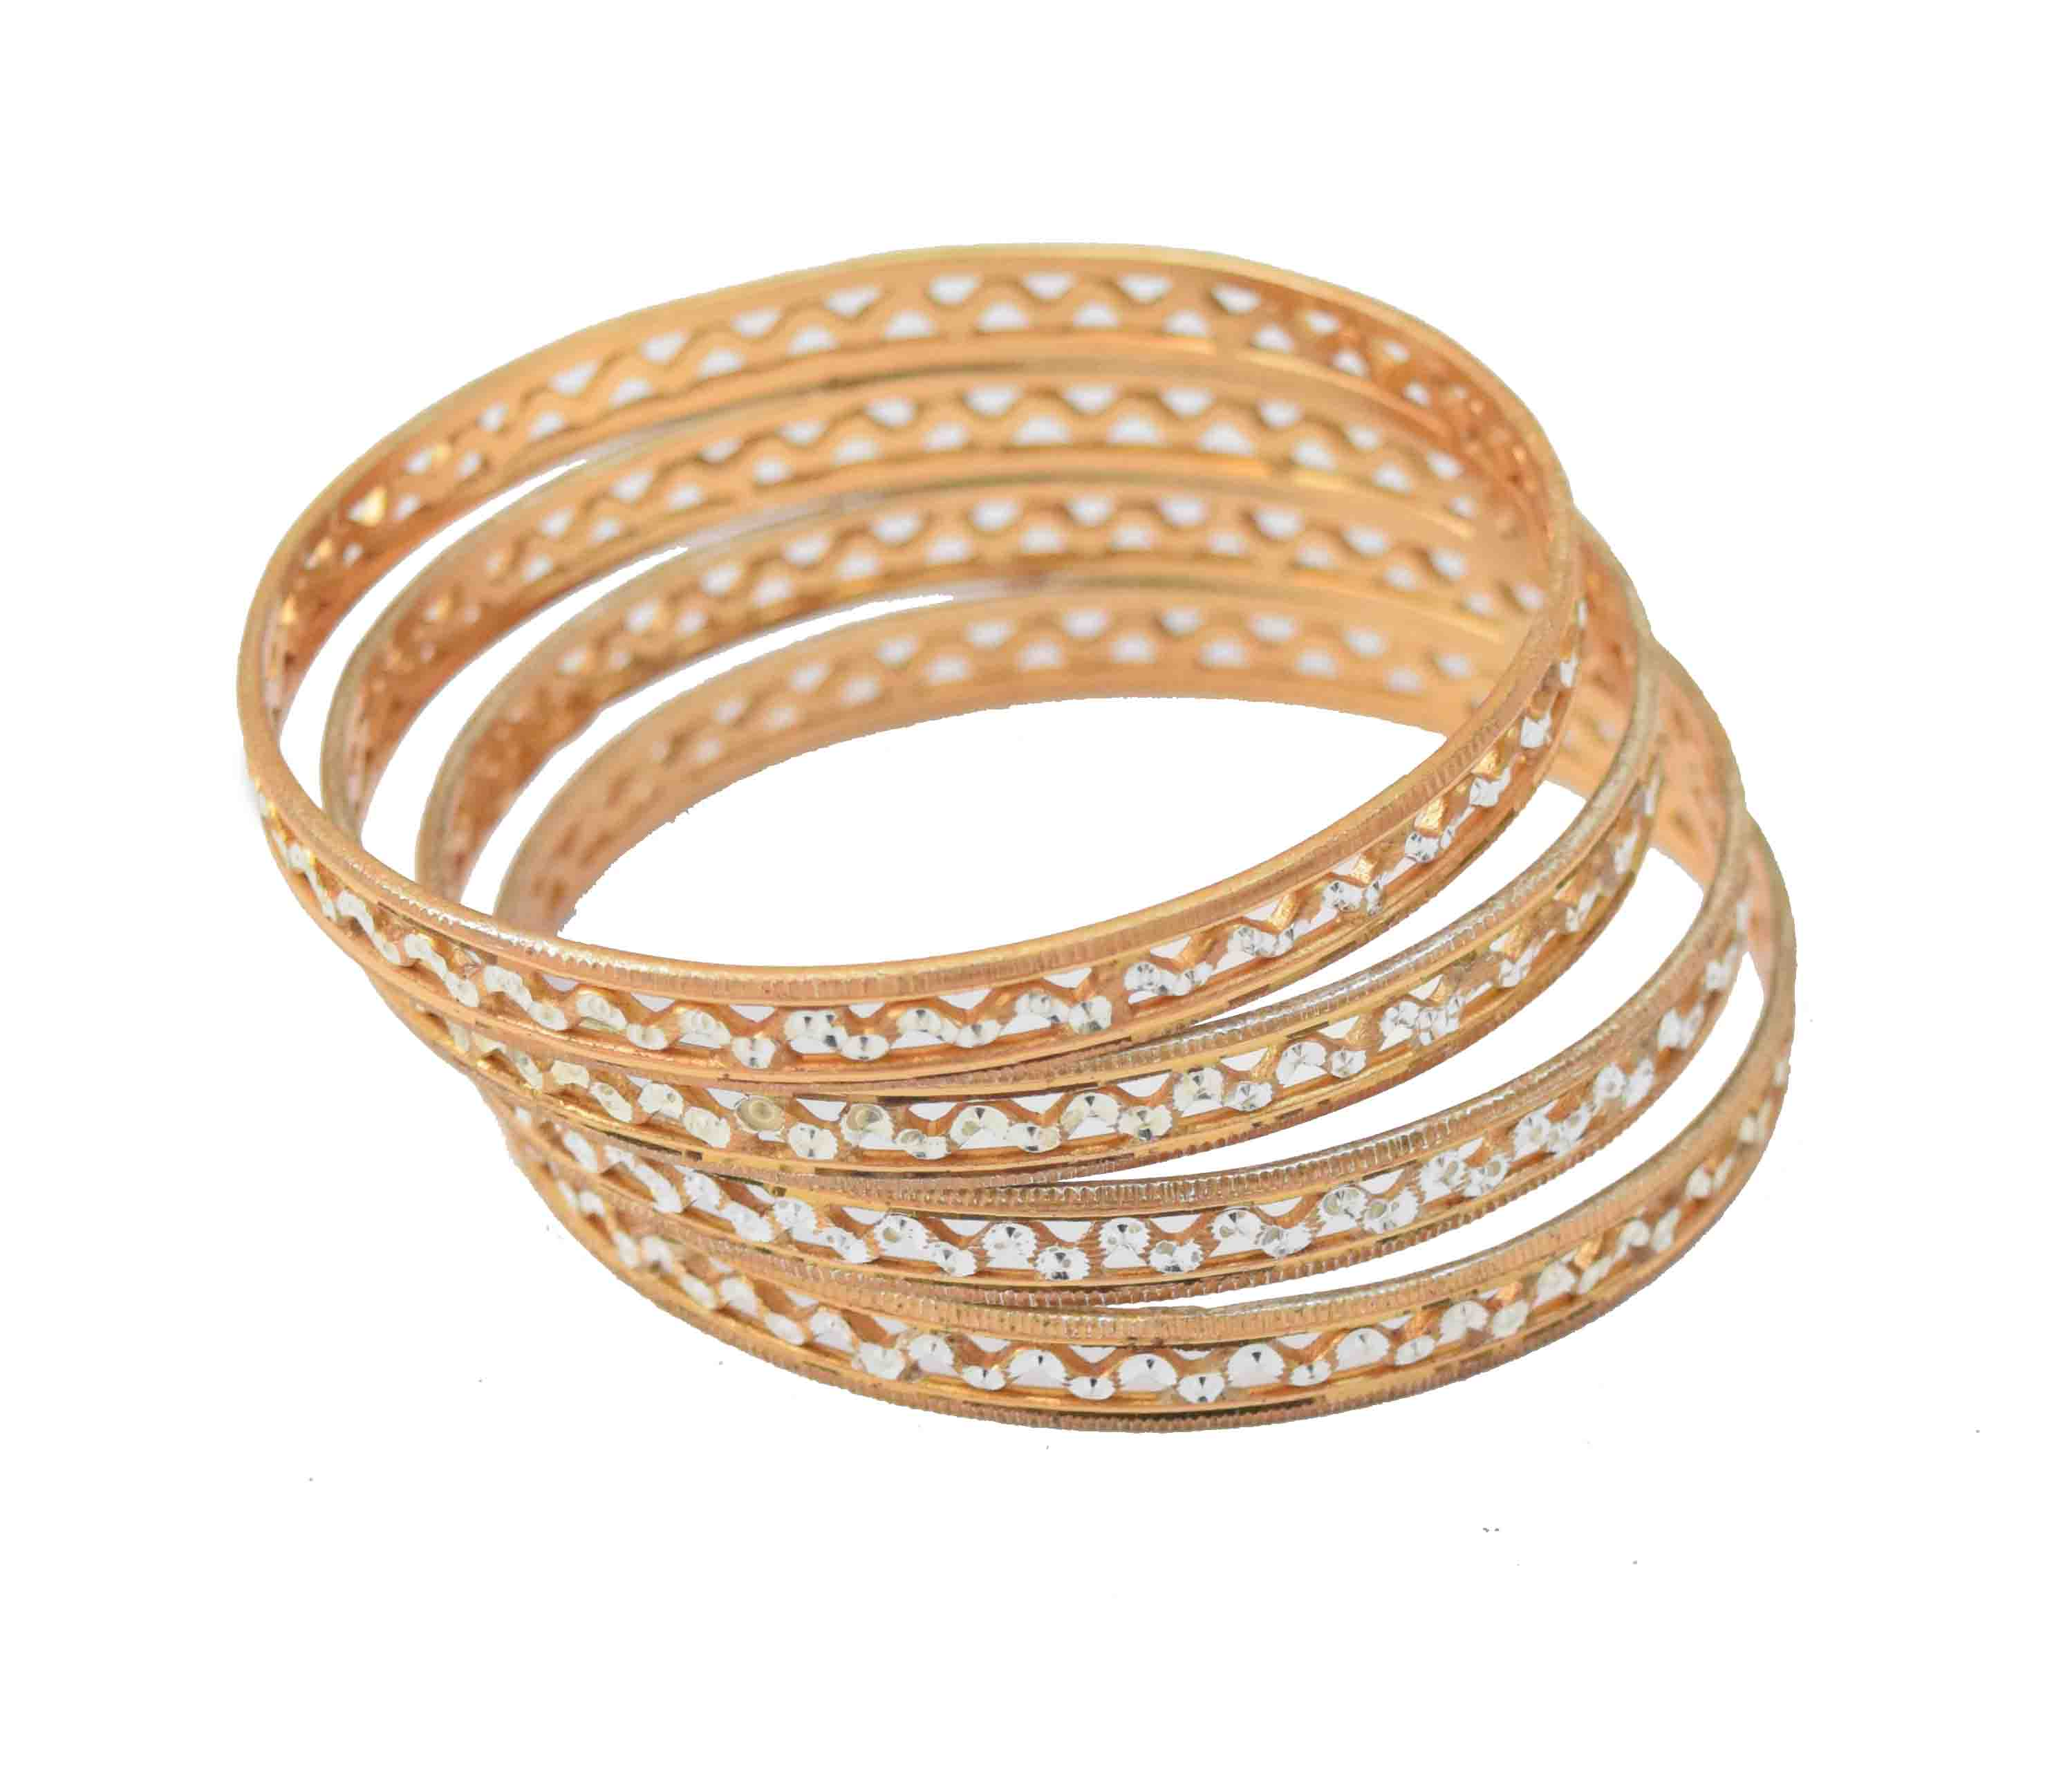 Sleek Golden designer bangles set of 4 pieces BN155 1